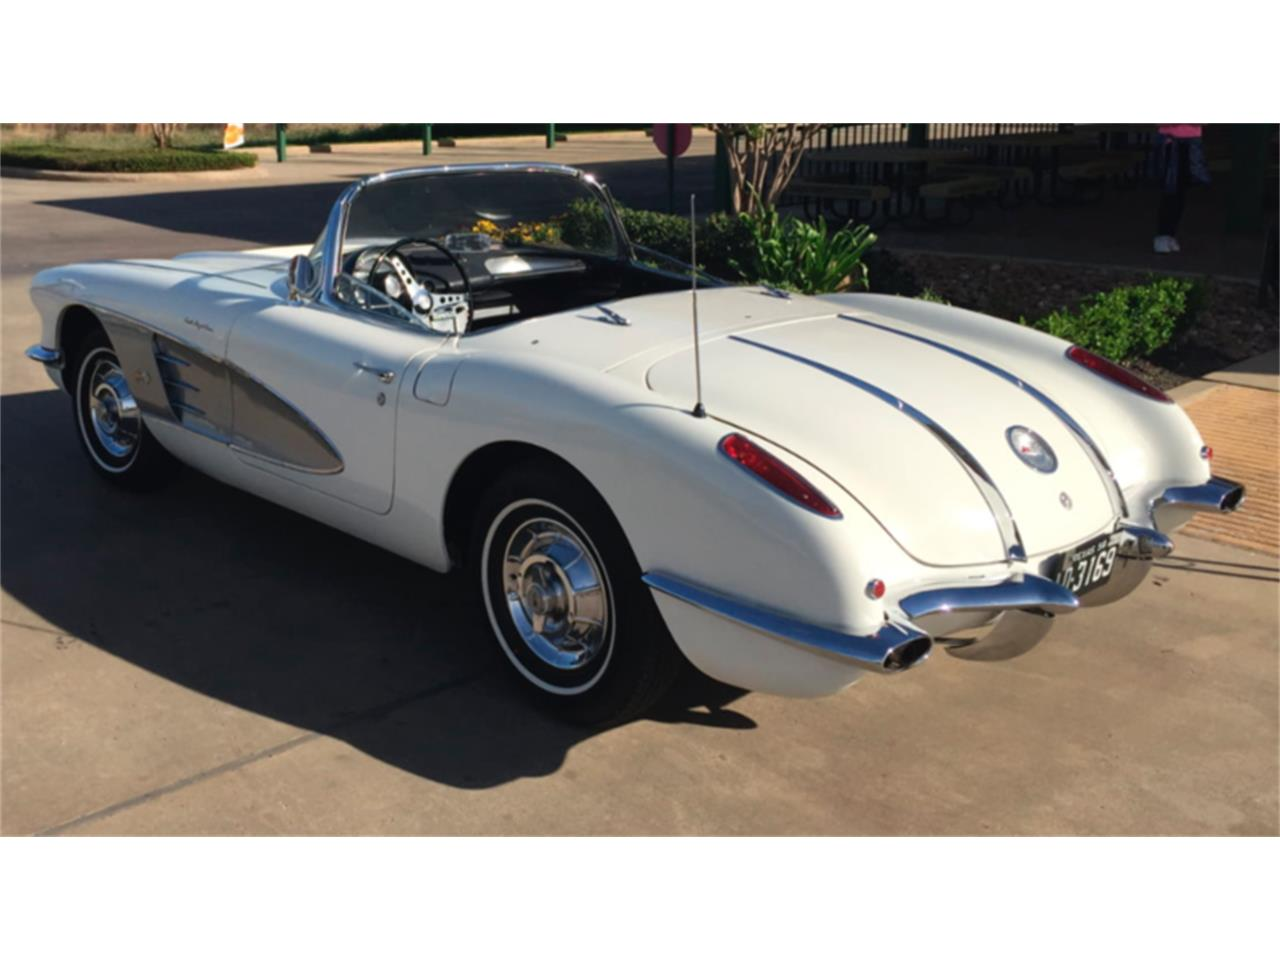 Large Picture of Classic 1958 Chevrolet Corvette located in Florida Auction Vehicle Offered by Premier Auction Group - NRDY